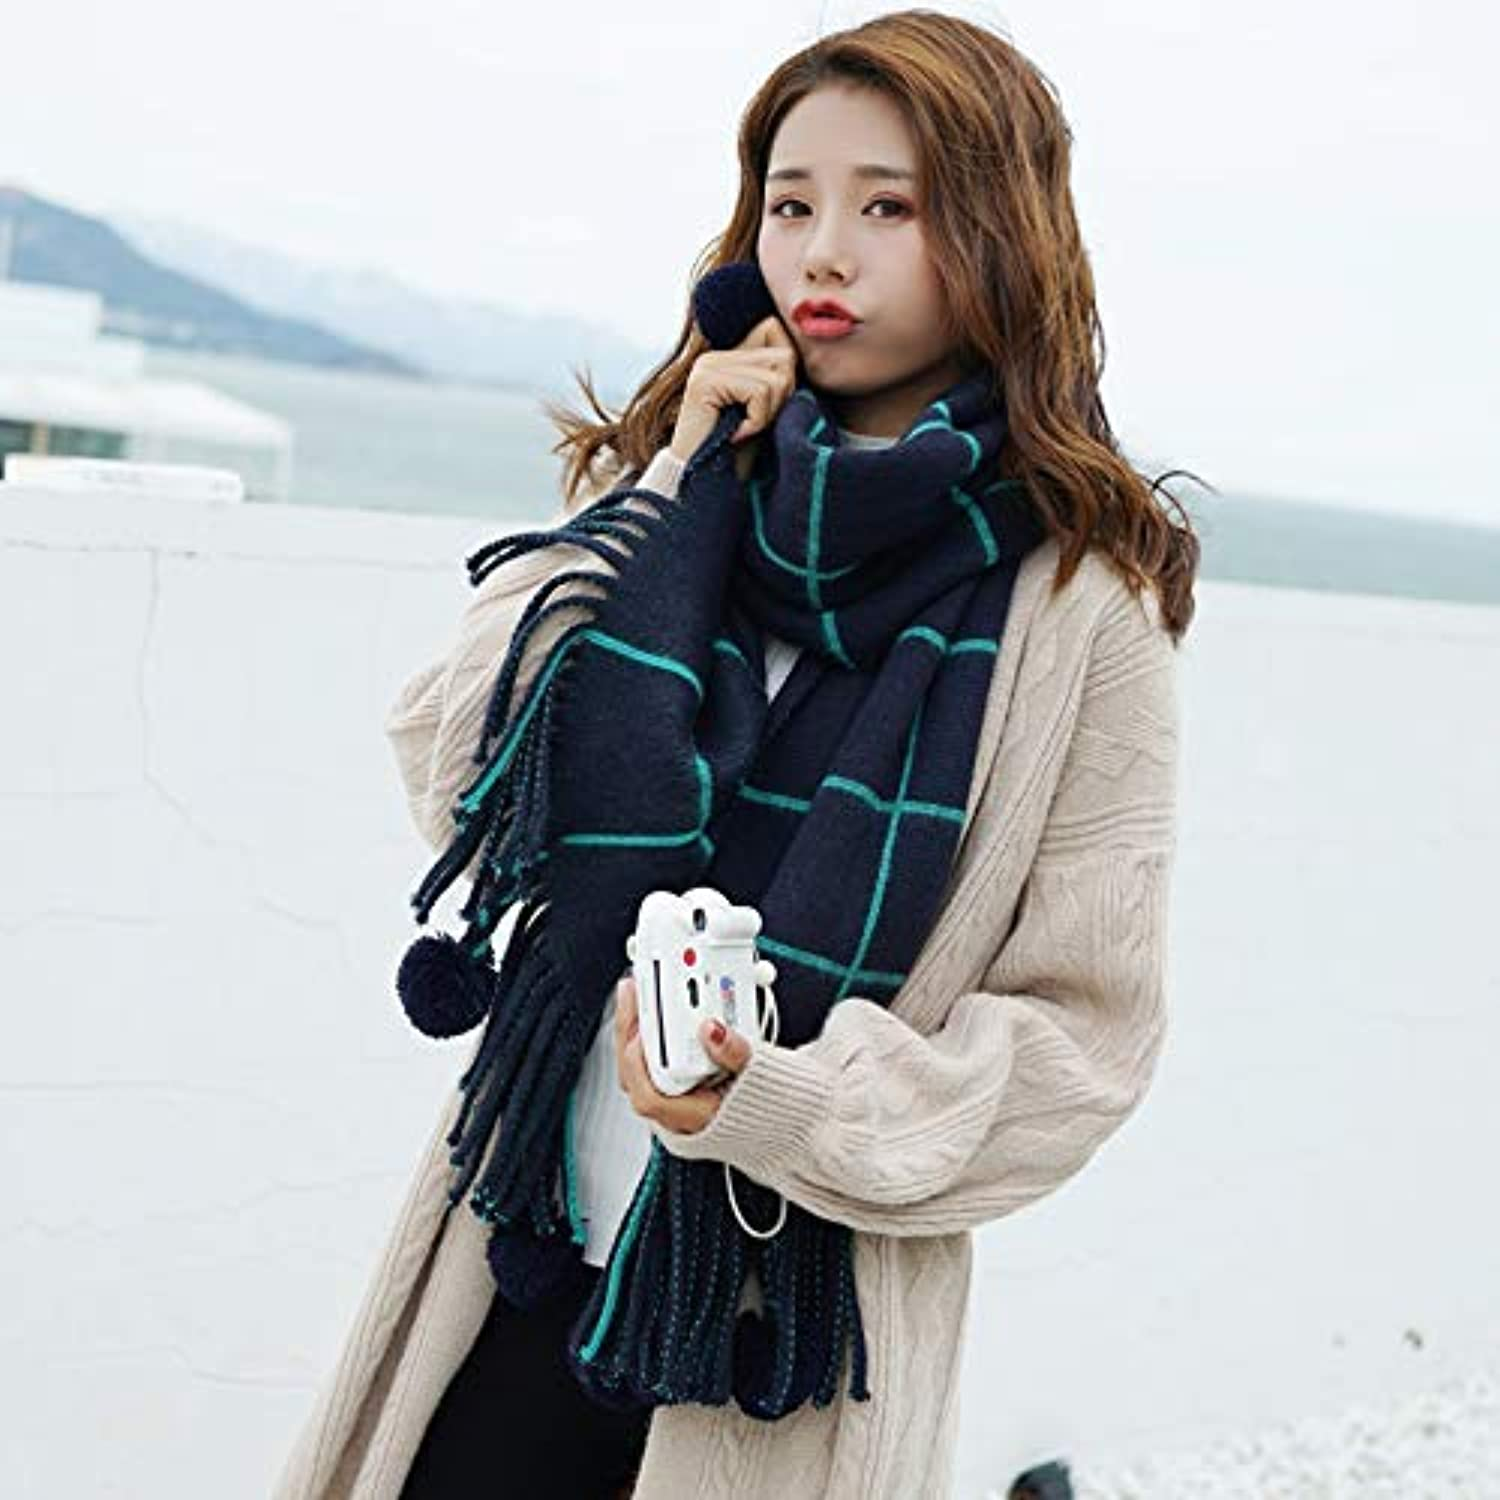 Scarf for Gift Scarf Women's Wild Autumn Winter Women's Knit Thicken Wool Plaid Ball Neck Knitting (color   White) Classic Scarf (color   Green)